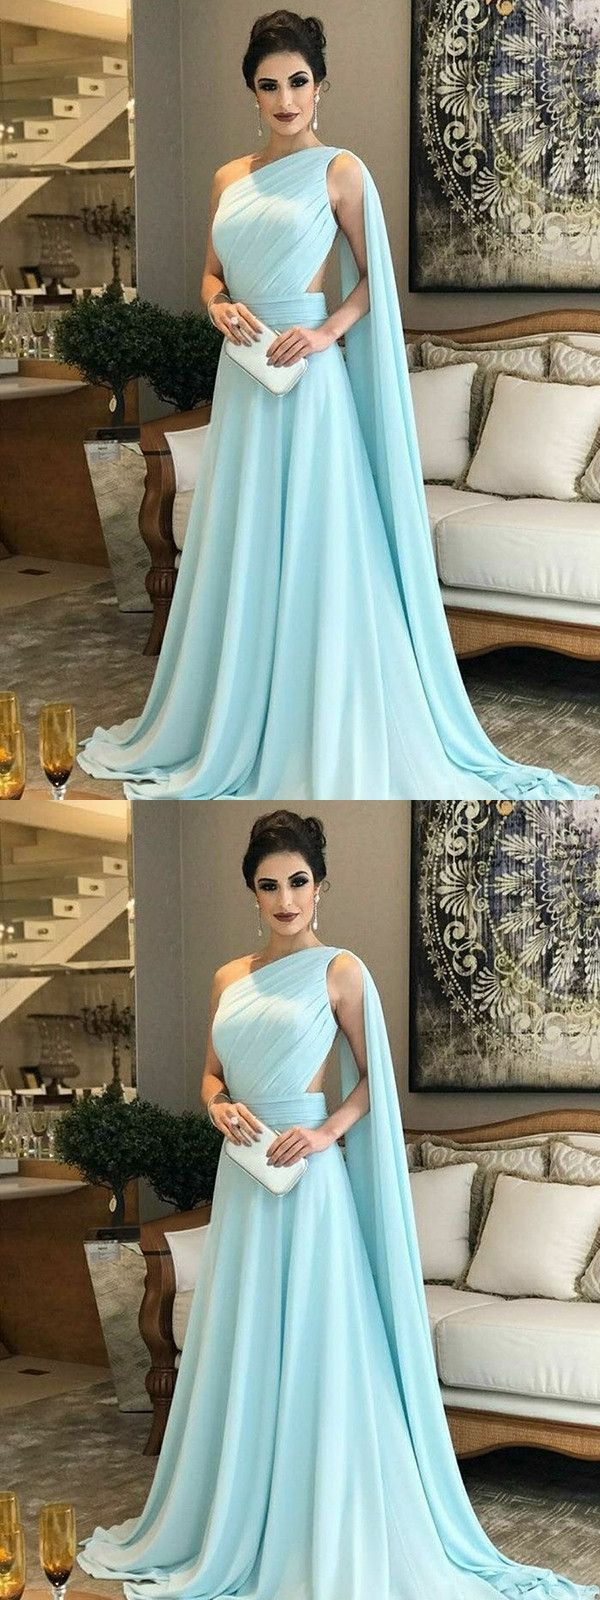 A feminine touch with elegantly designed chiffon prom dress!